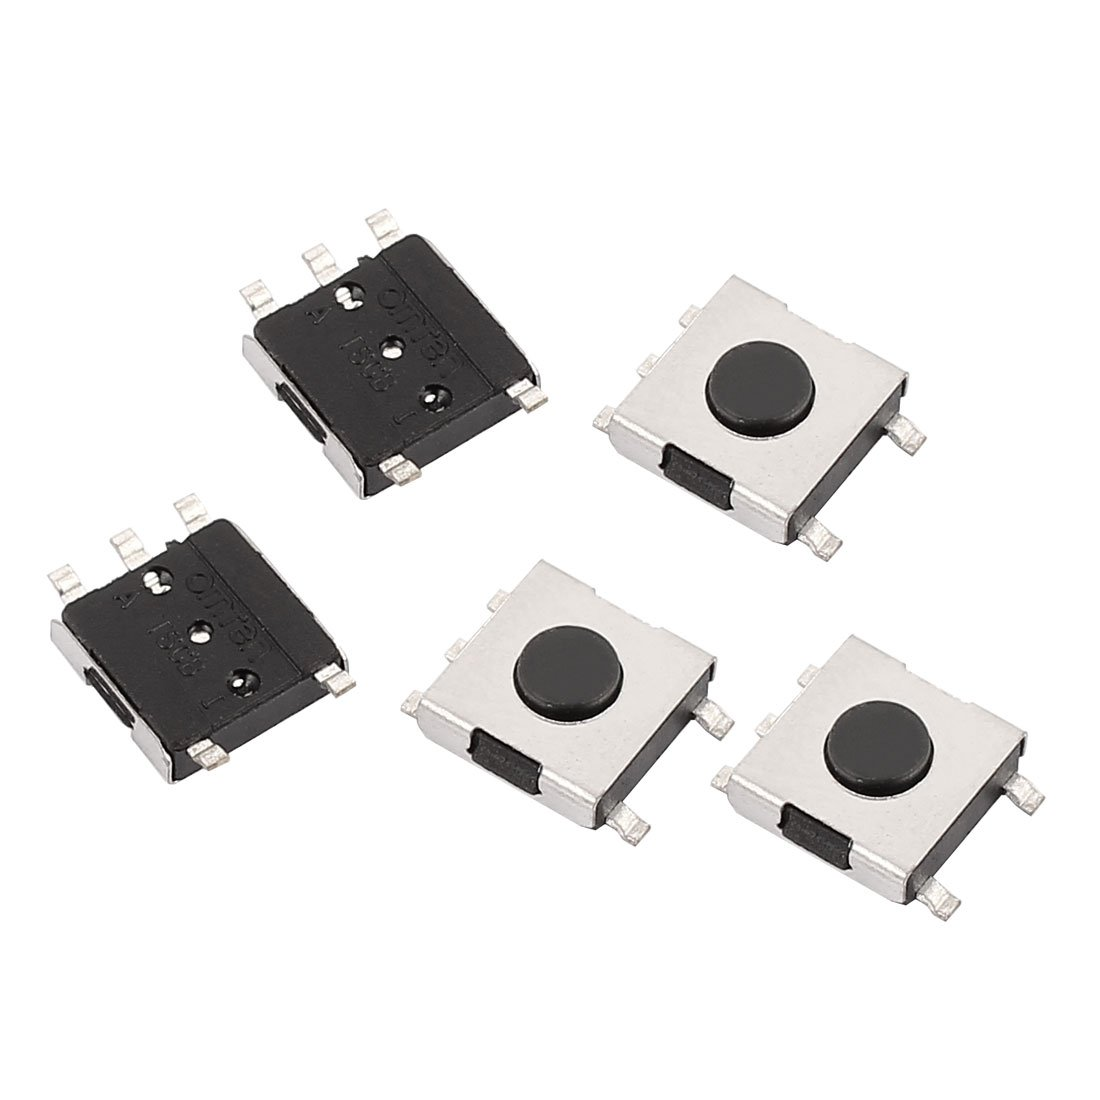 uxcell 5Pcs 6x6x3.7mm Panel PCB Momentary Normally Closed Tactile Tact Push Button Switch 5 Pin DIP